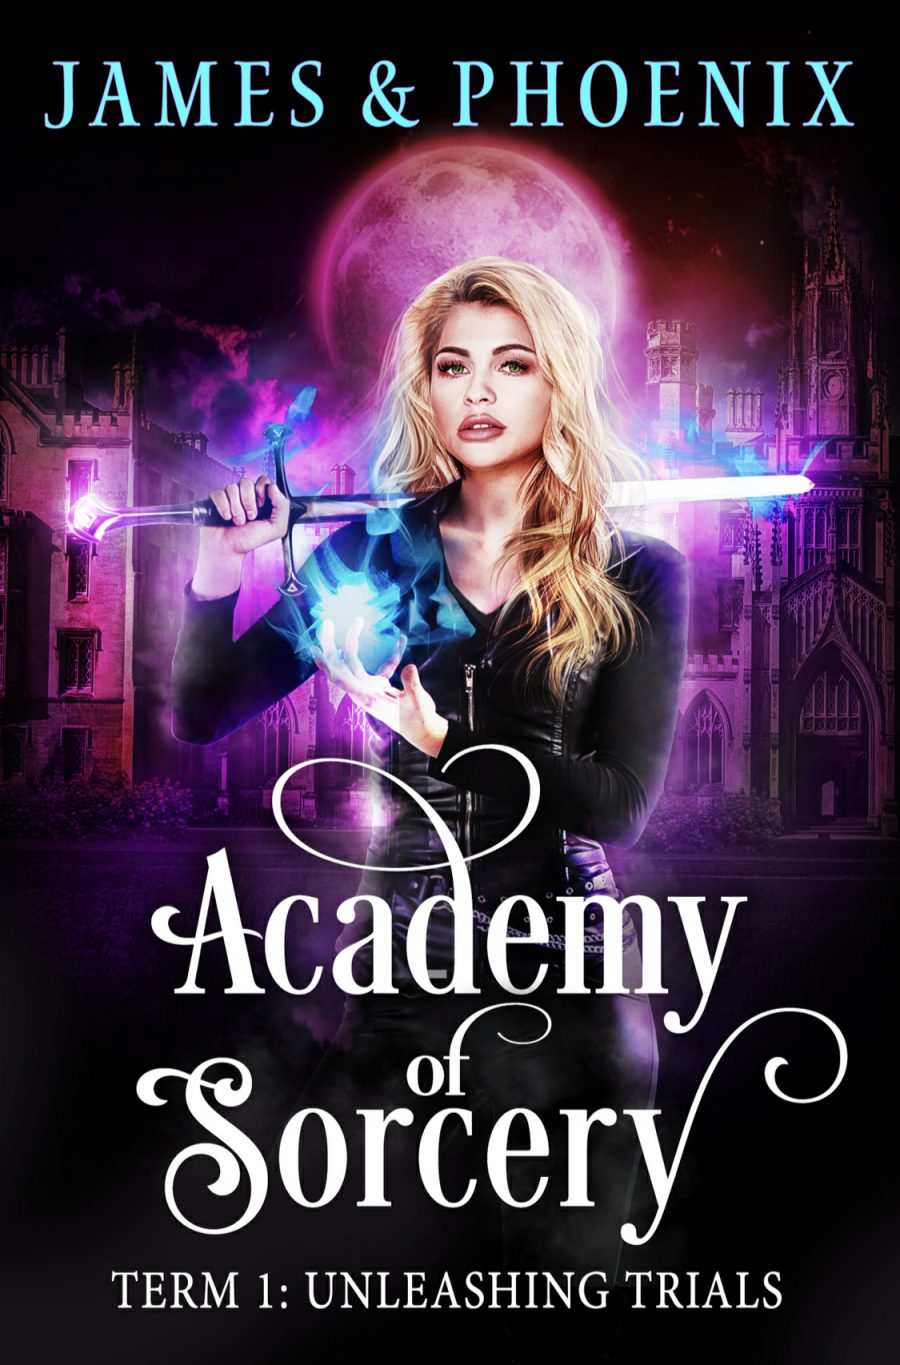 Unleashing Trials:Year 1 (Academy of Sorcery - Book 1) by Alexa B. James & Athena Phoenix - A Book Review #BookReview #SlowBurn #RH #Academy #PNR #KindleUnlimited #KU